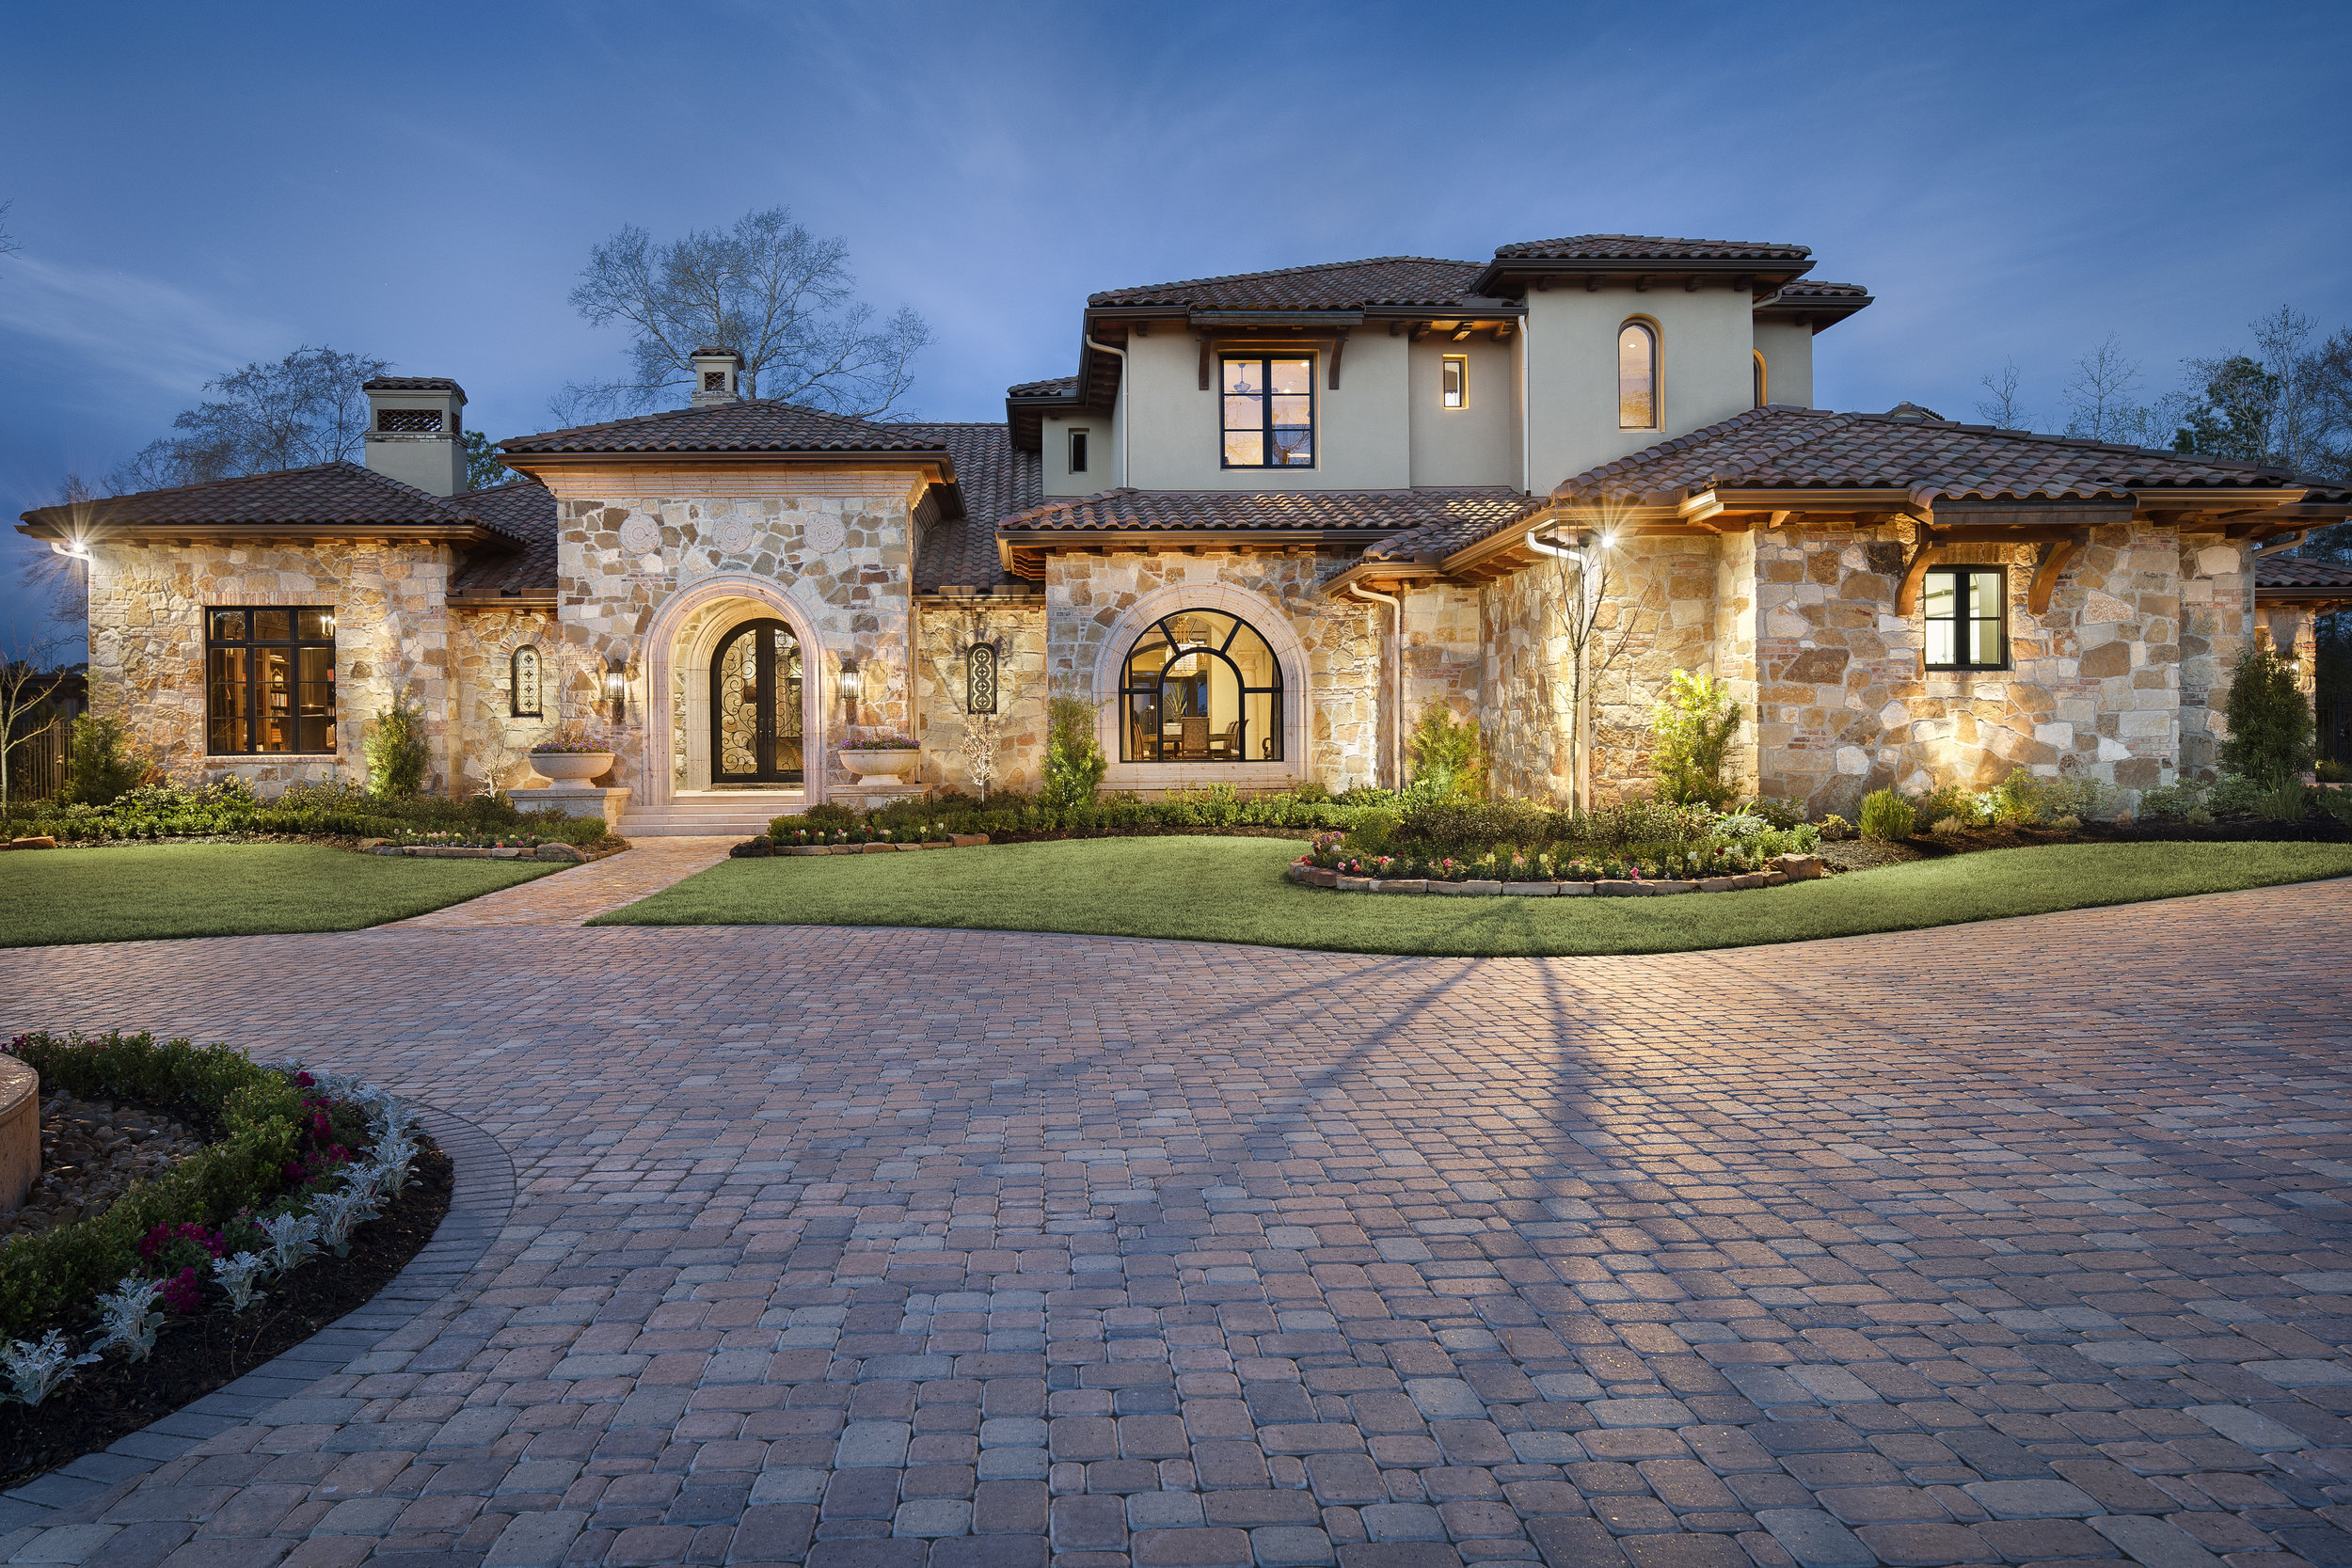 Texas Luxury Interior Design Woodlands - This award-winning Houston home in the Woodlands is shining with elegance through statement light fixtures and luxurious fabrics. The original fine art was curated to enhance the tones in the special finishes, tiles and fabrics.